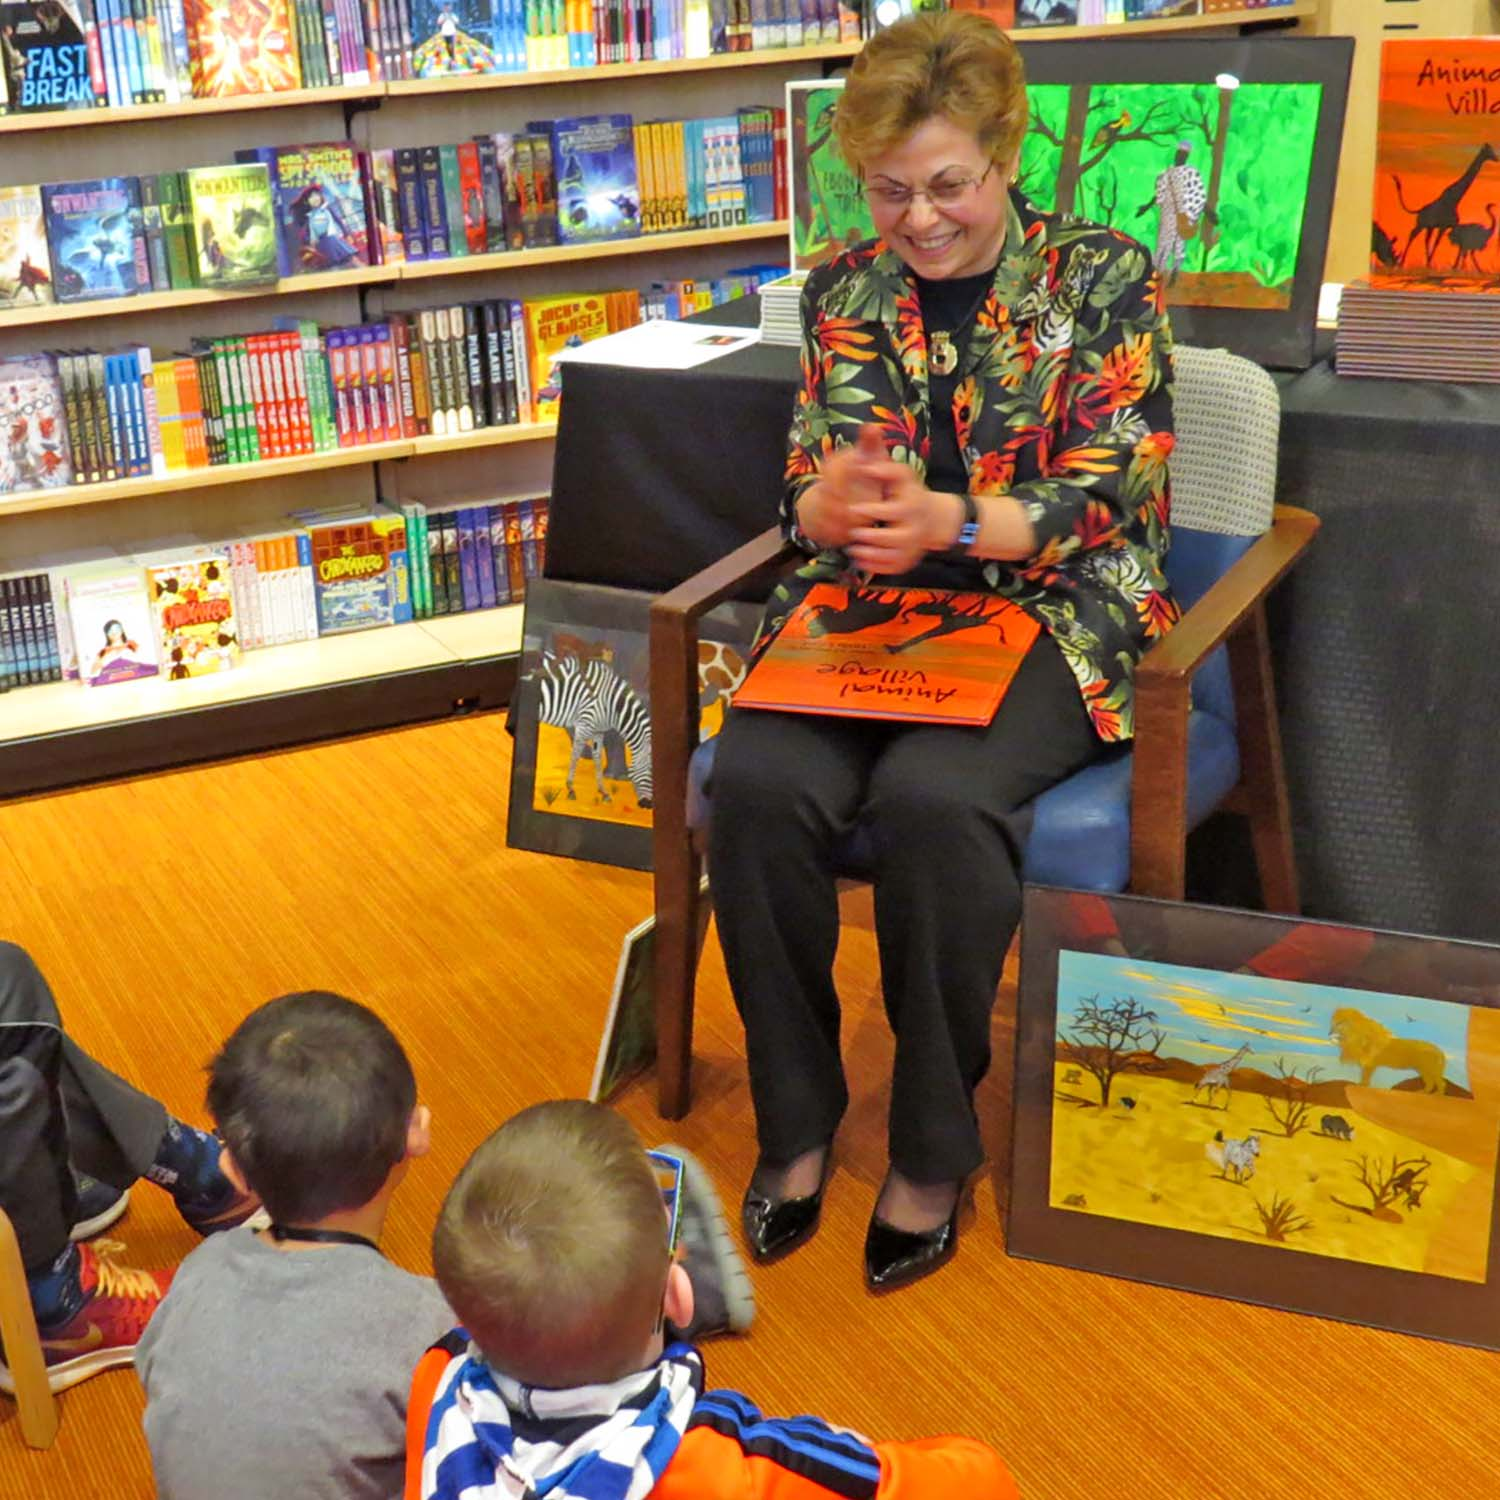 INMED OC - Nelda Talkng with children @ B&N